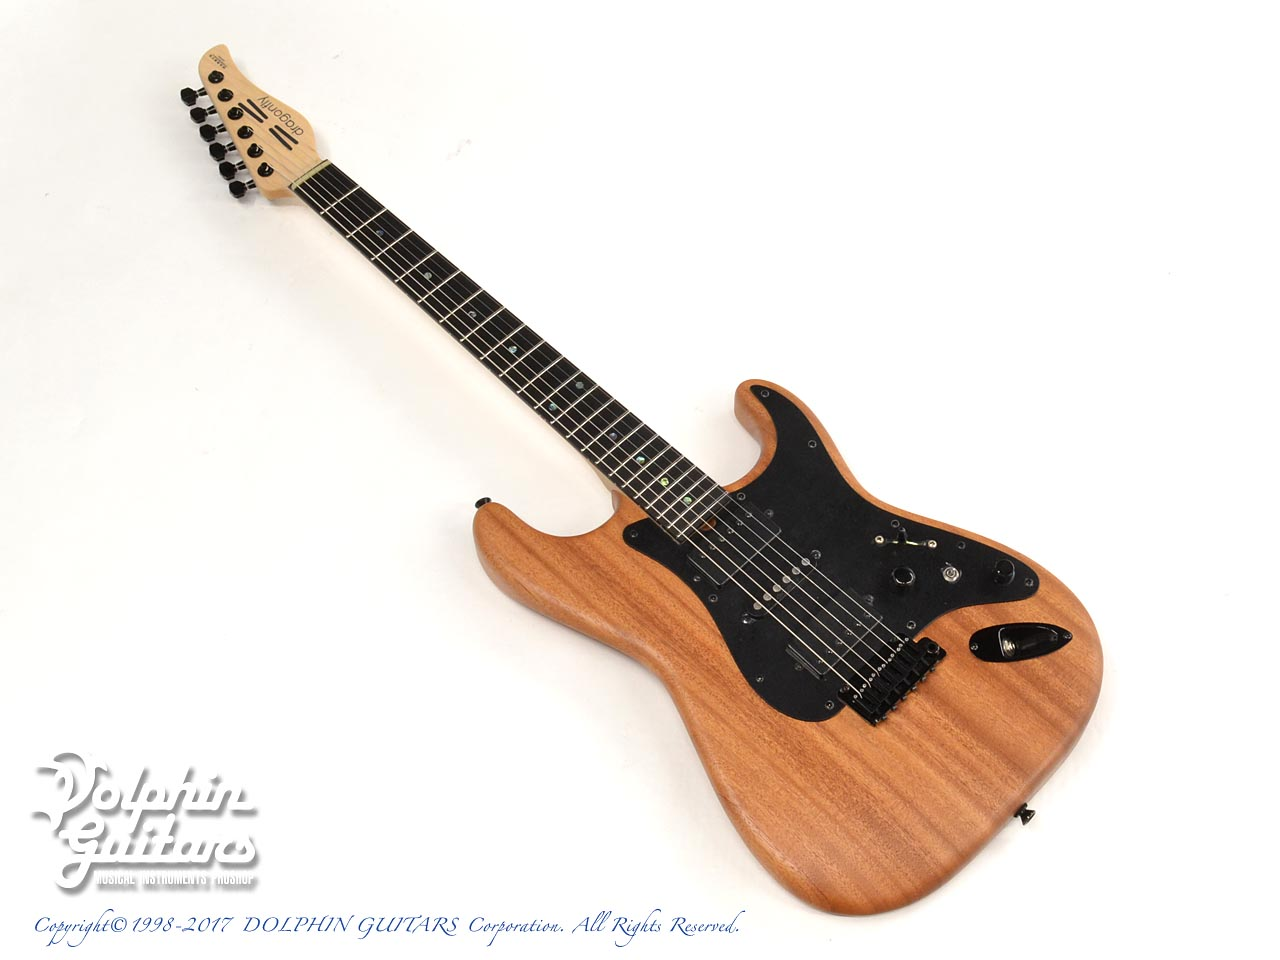 dragonfly: HI STA 22 FULL SIZE H-S-H Maple Neck (African Mahogany) (0)